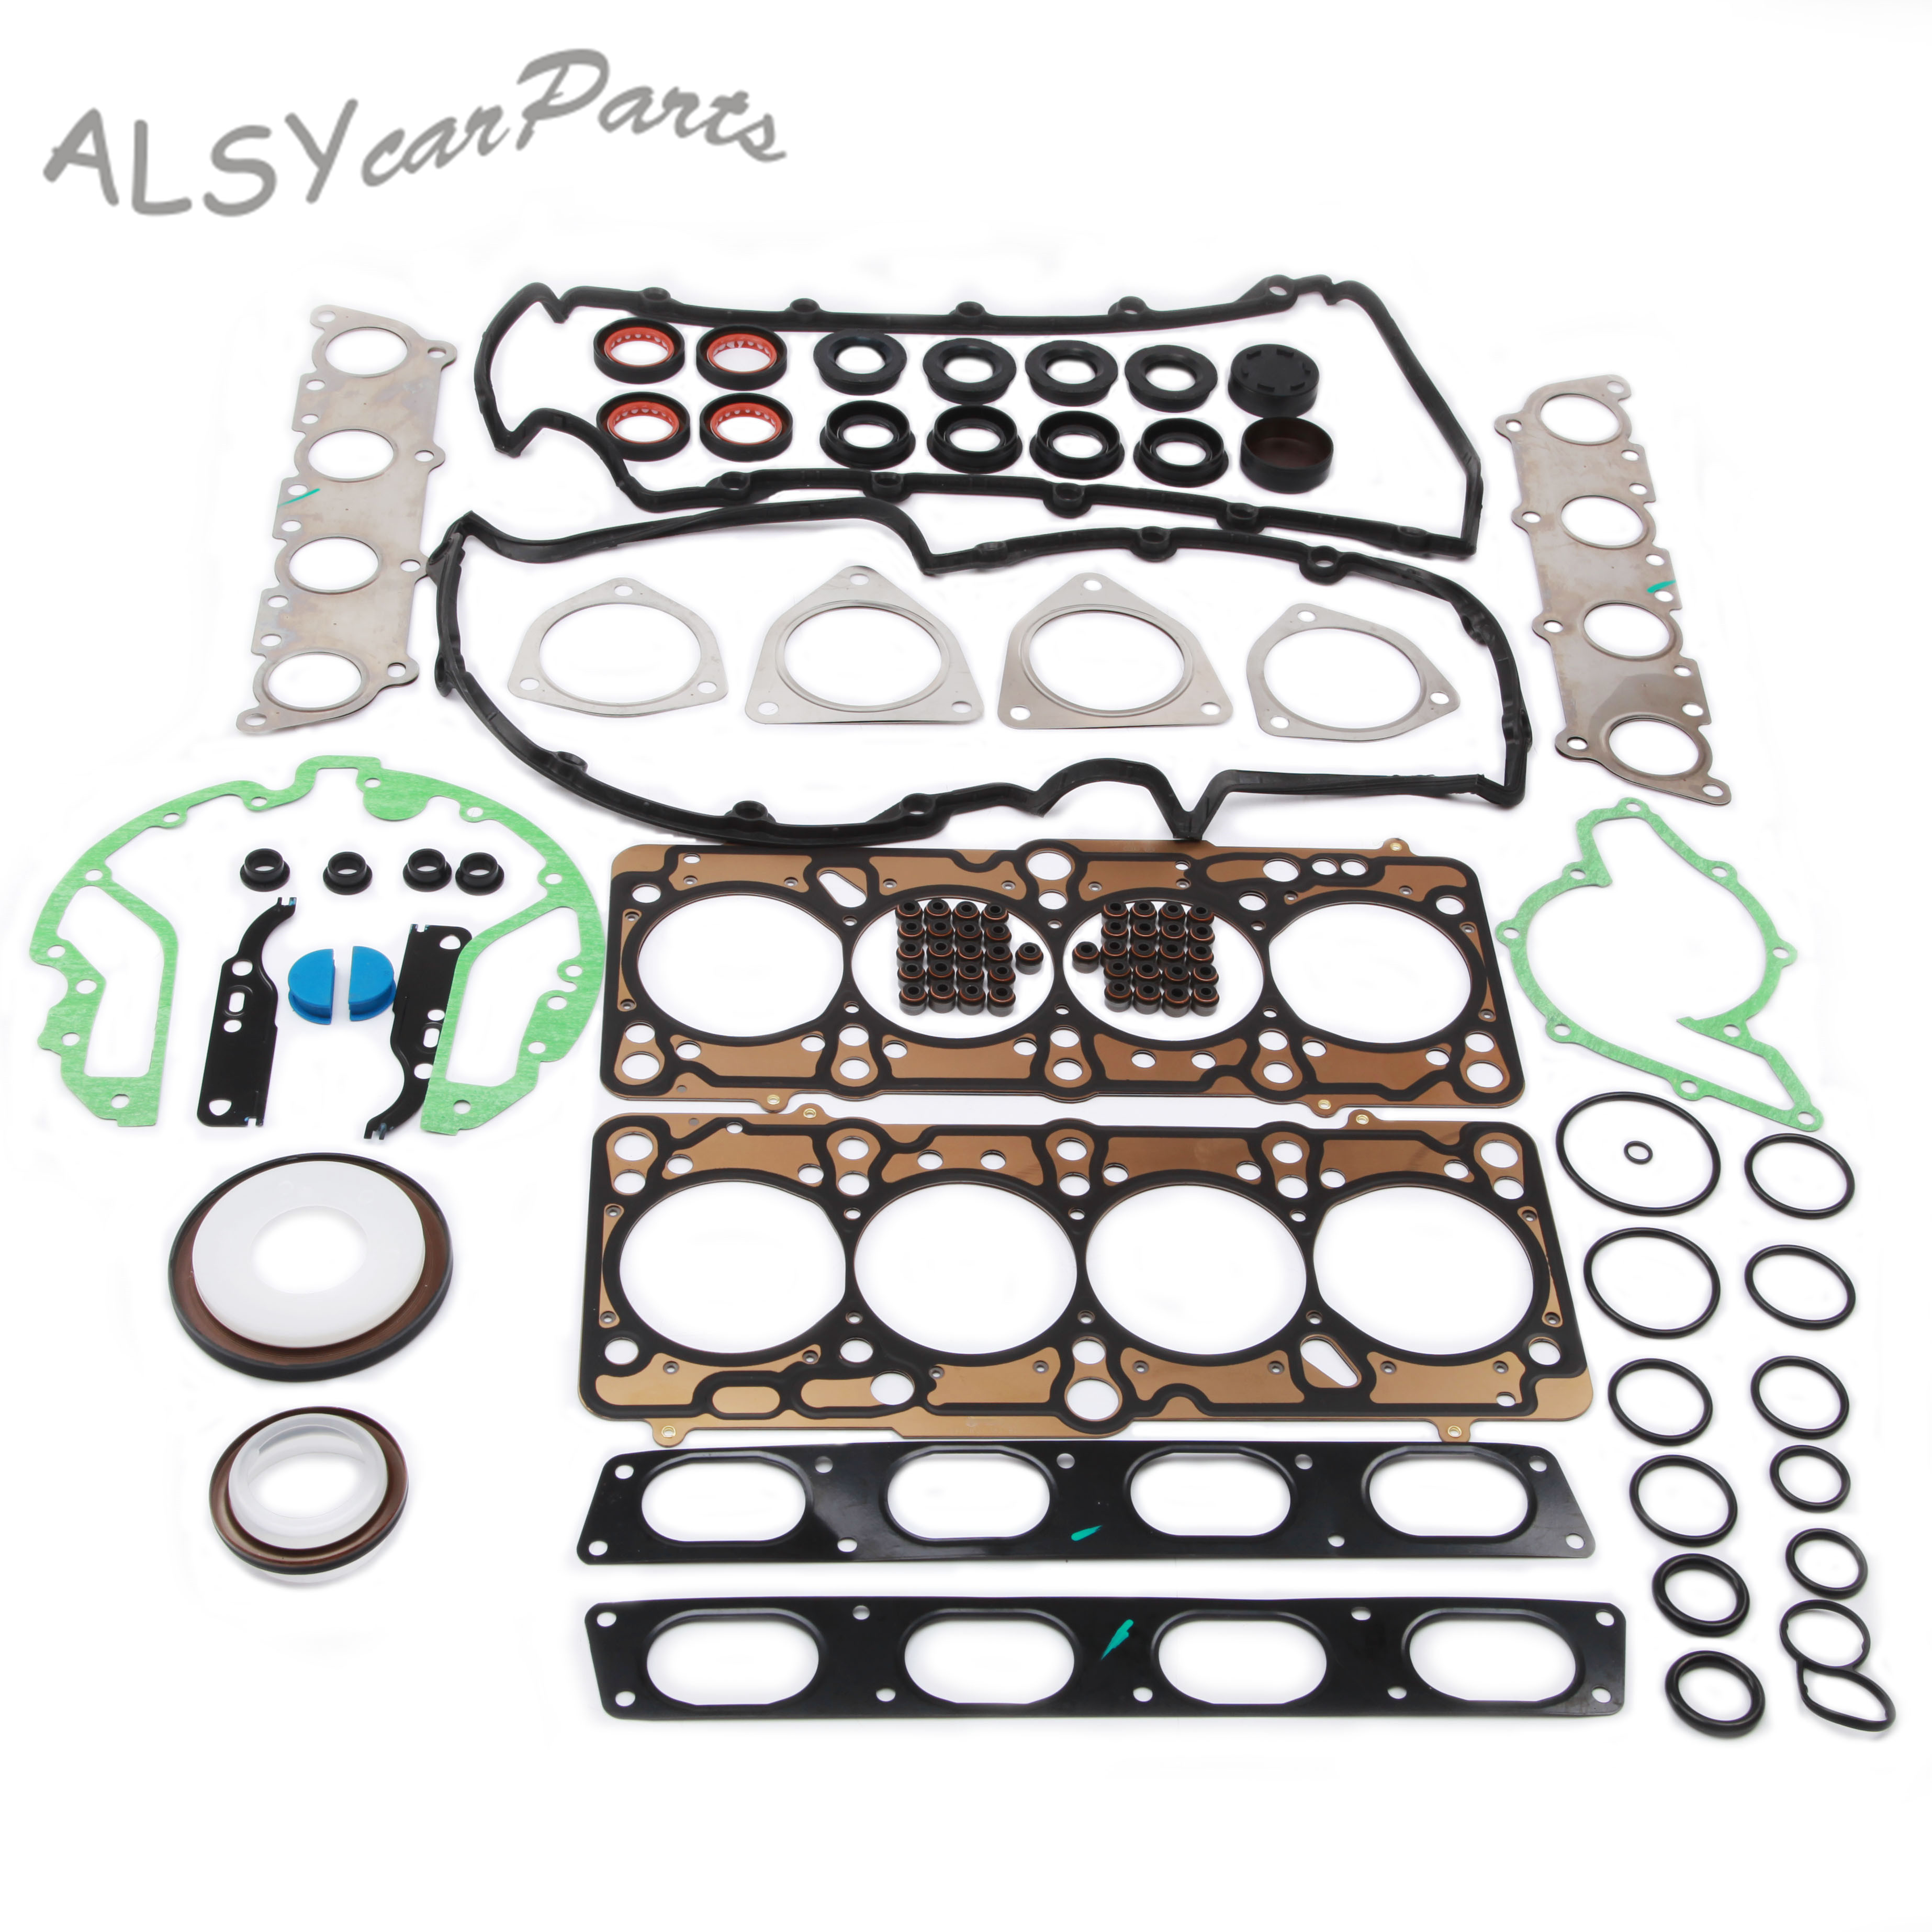 KEOGHS 077103383BN Engine Cylinder Head Gaskets Engine Seal Repair Kit For Audi A6 S6 A8 S8 VW Touareg 3.7L 4.2L 077 103 383 BS